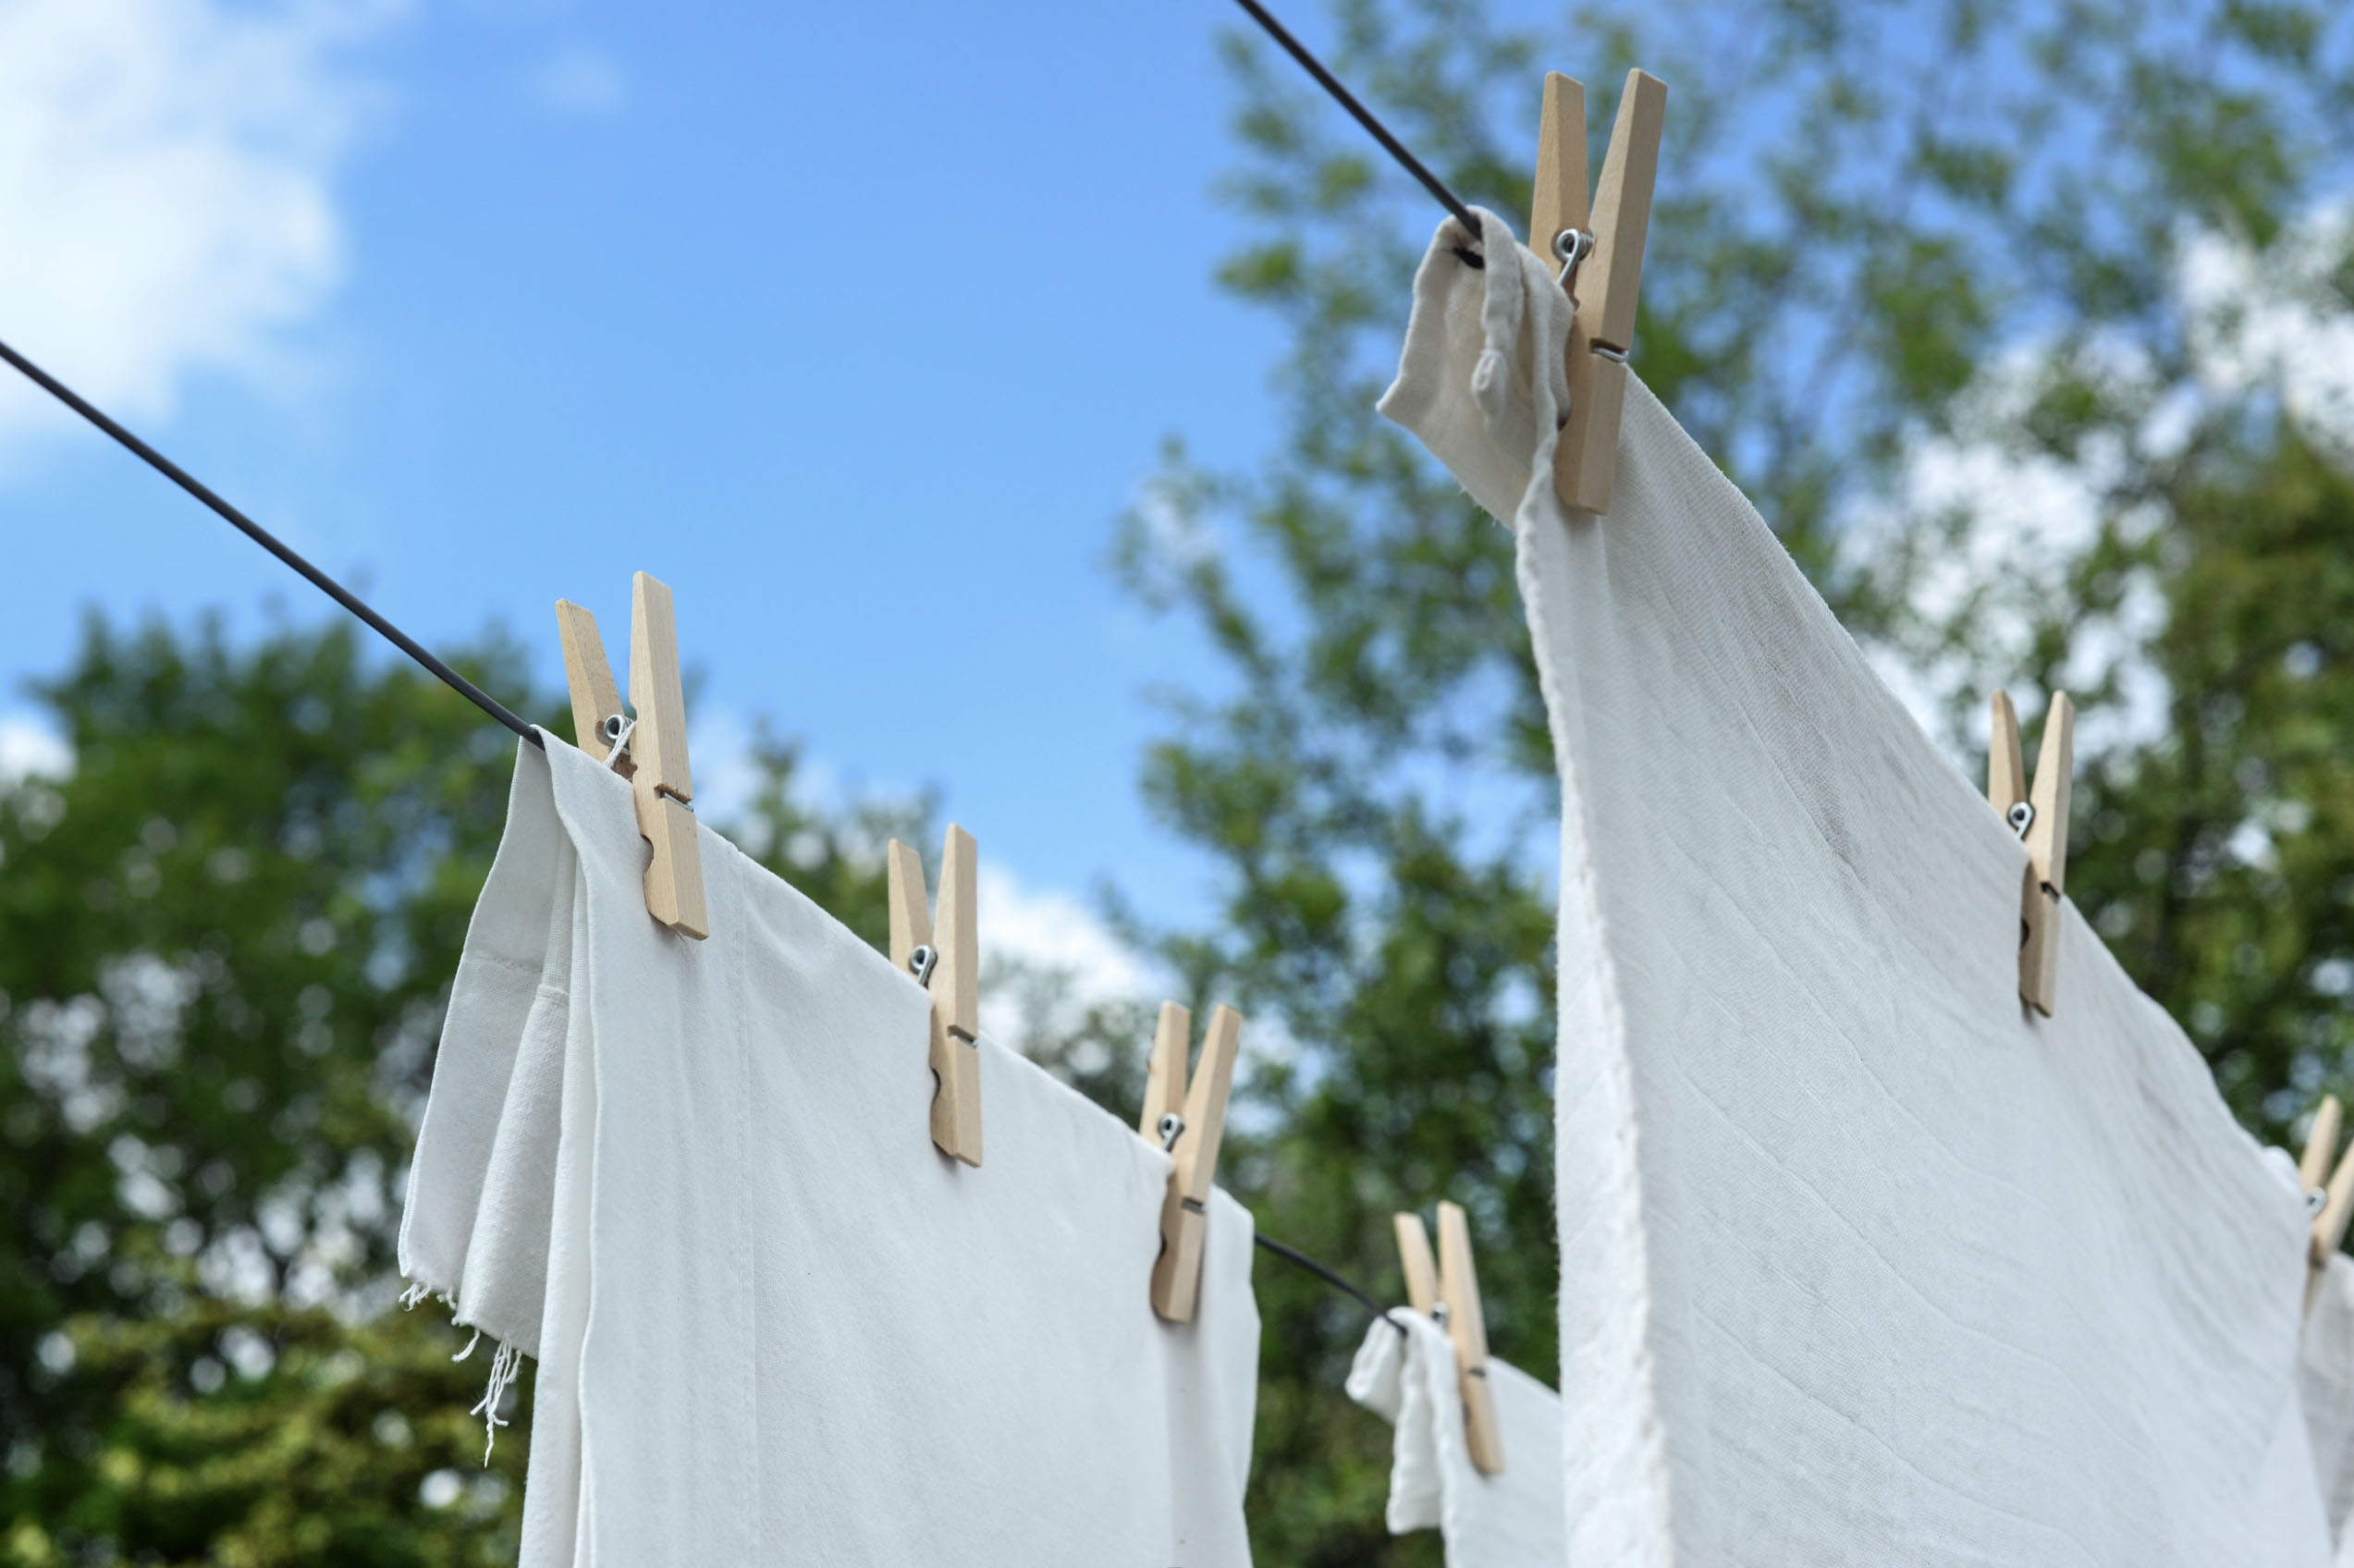 sheets hanging on a clothesline